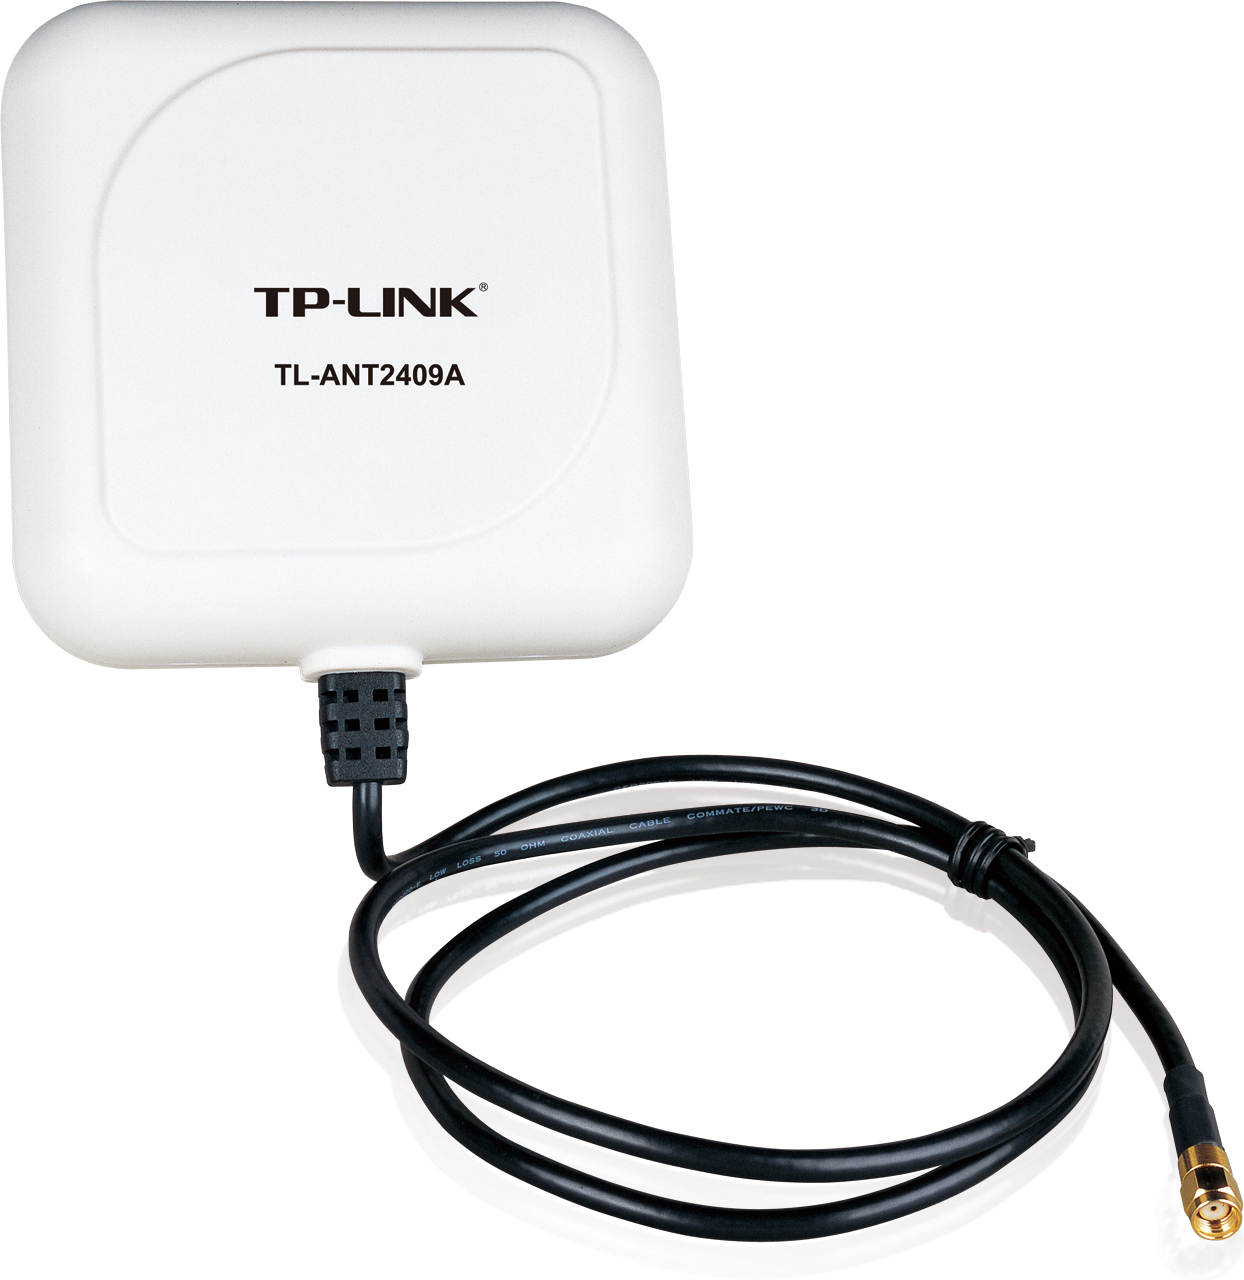 Digital Home Tp Link Tl Wn8200nd 300mbps High Power Usb Adapter Http Linkcom Resources Images Products Large Ant2409a 01